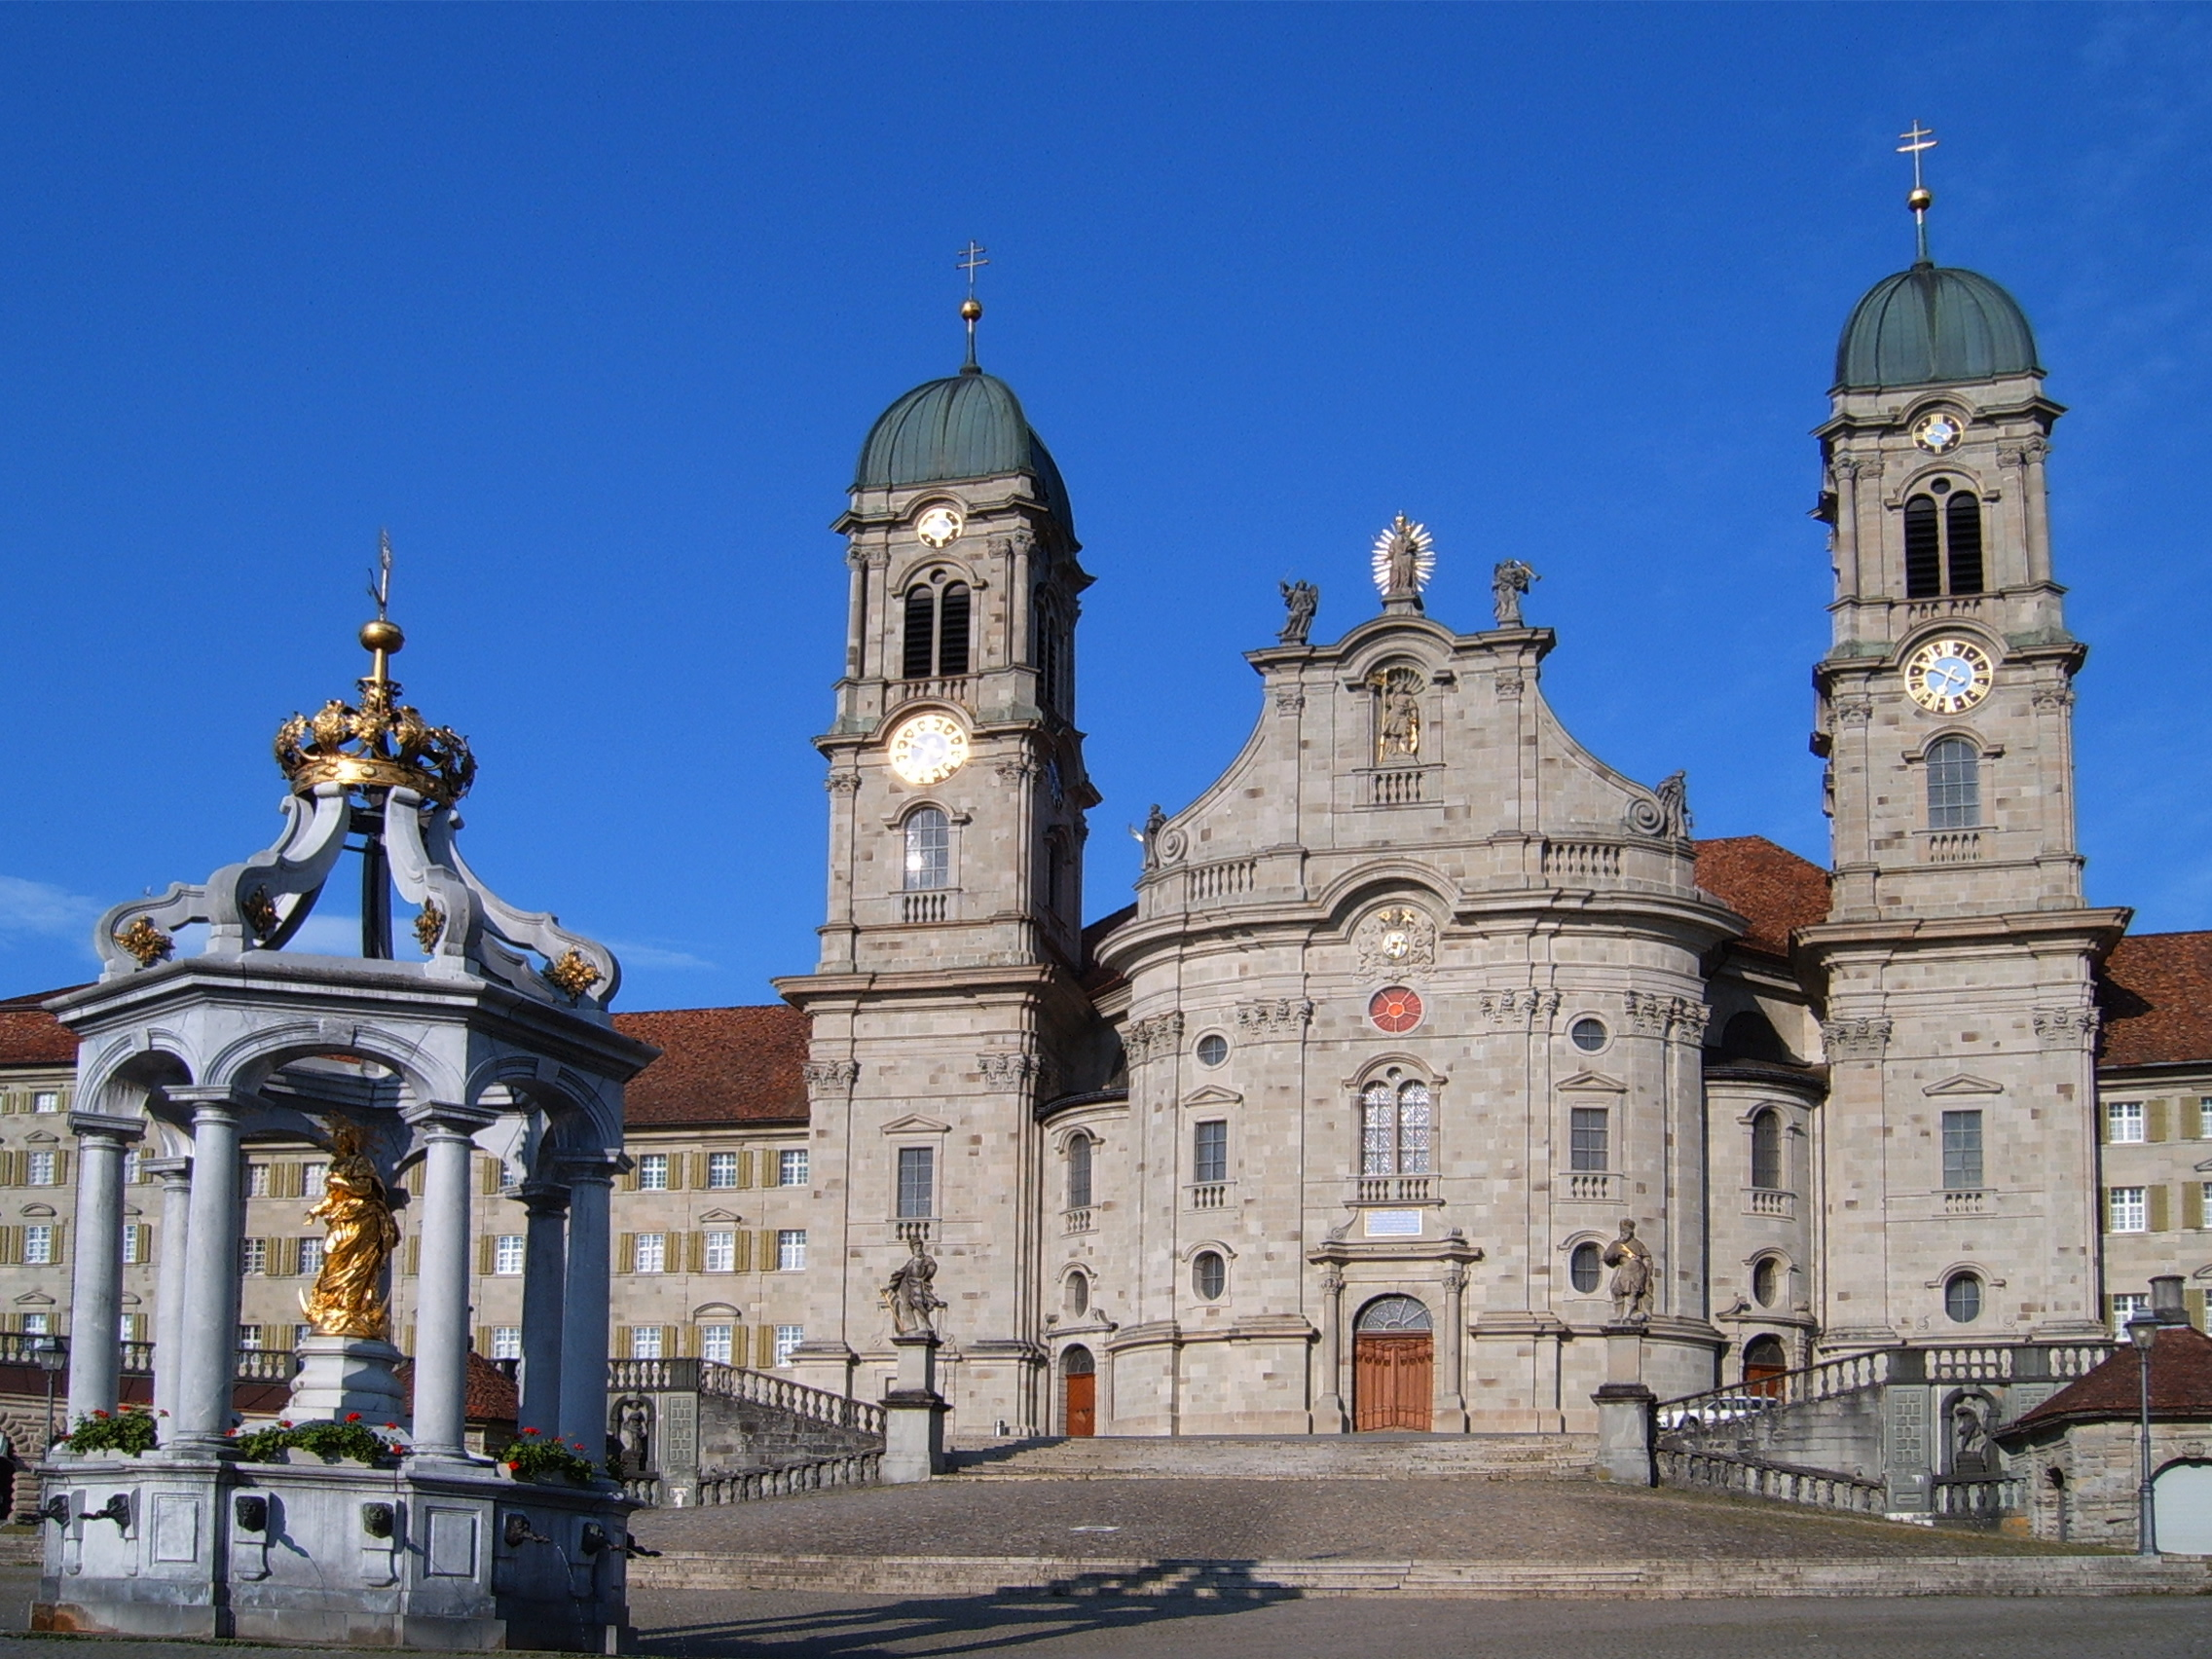 http://upload.wikimedia.org/wikipedia/commons/5/58/Kloster_Einsiedeln_001.jpg